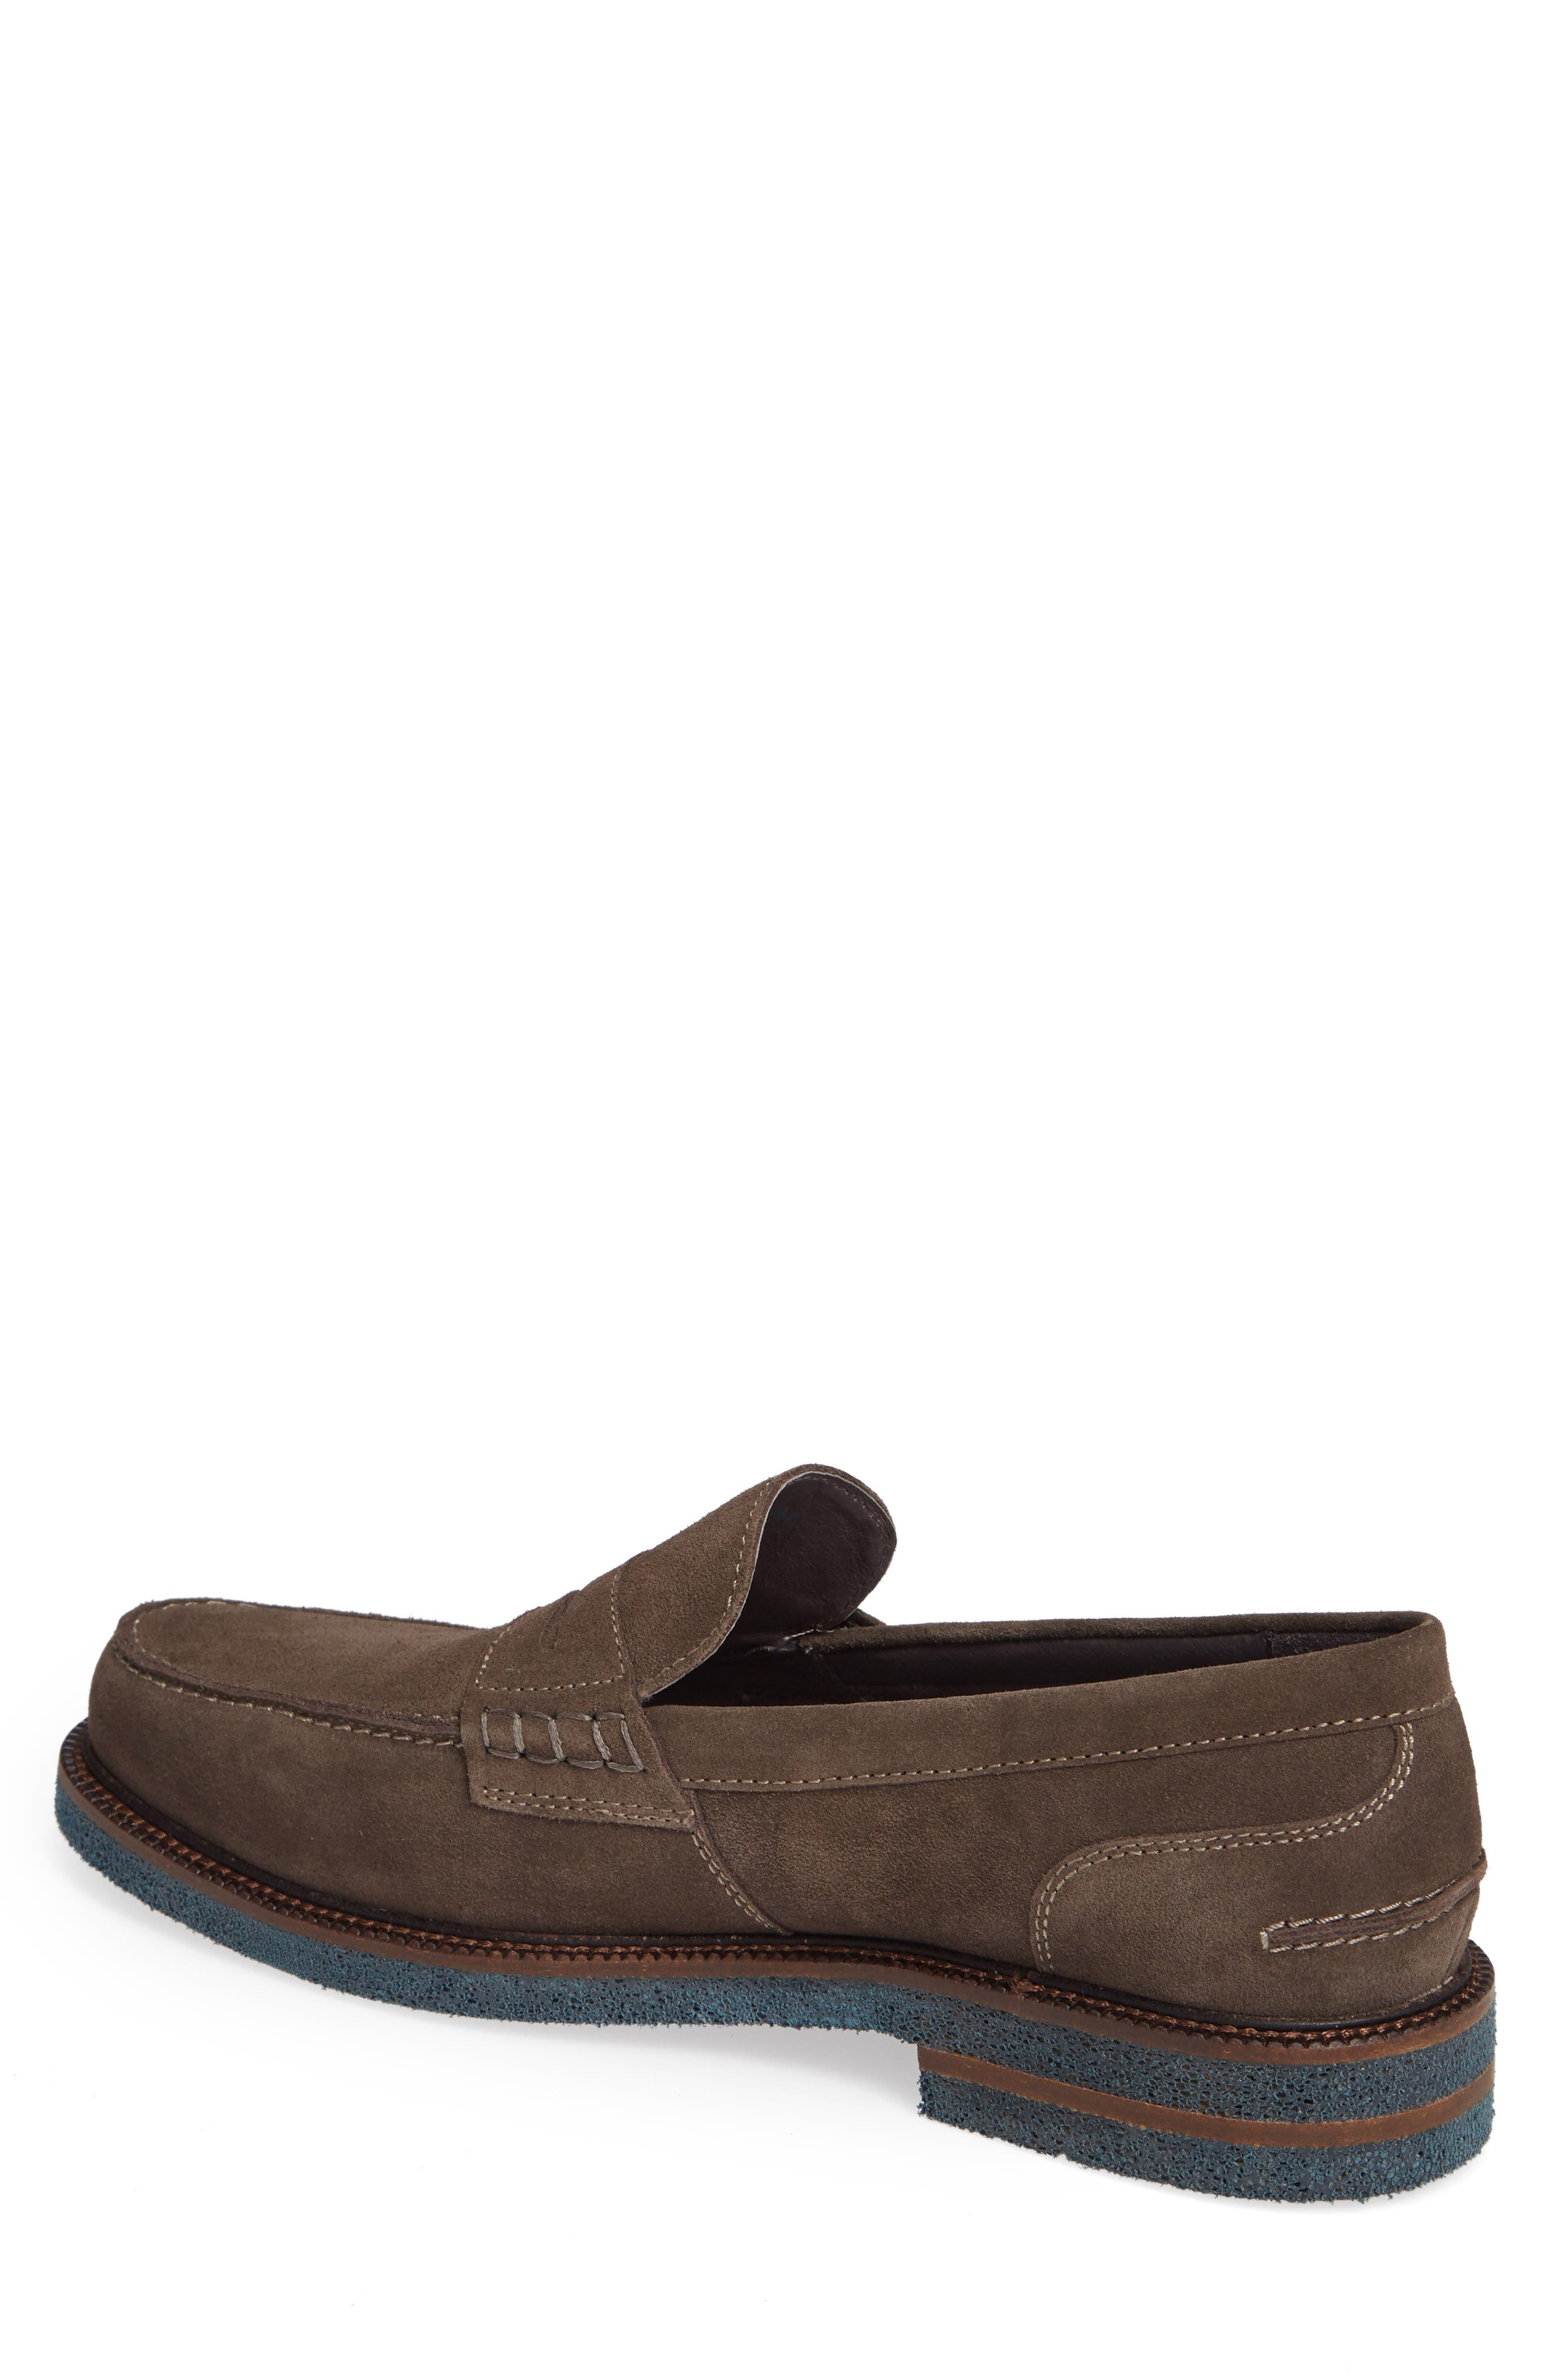 Landry Penny Loafer,                             Alternate thumbnail 2, color,                             GREY SUEDE